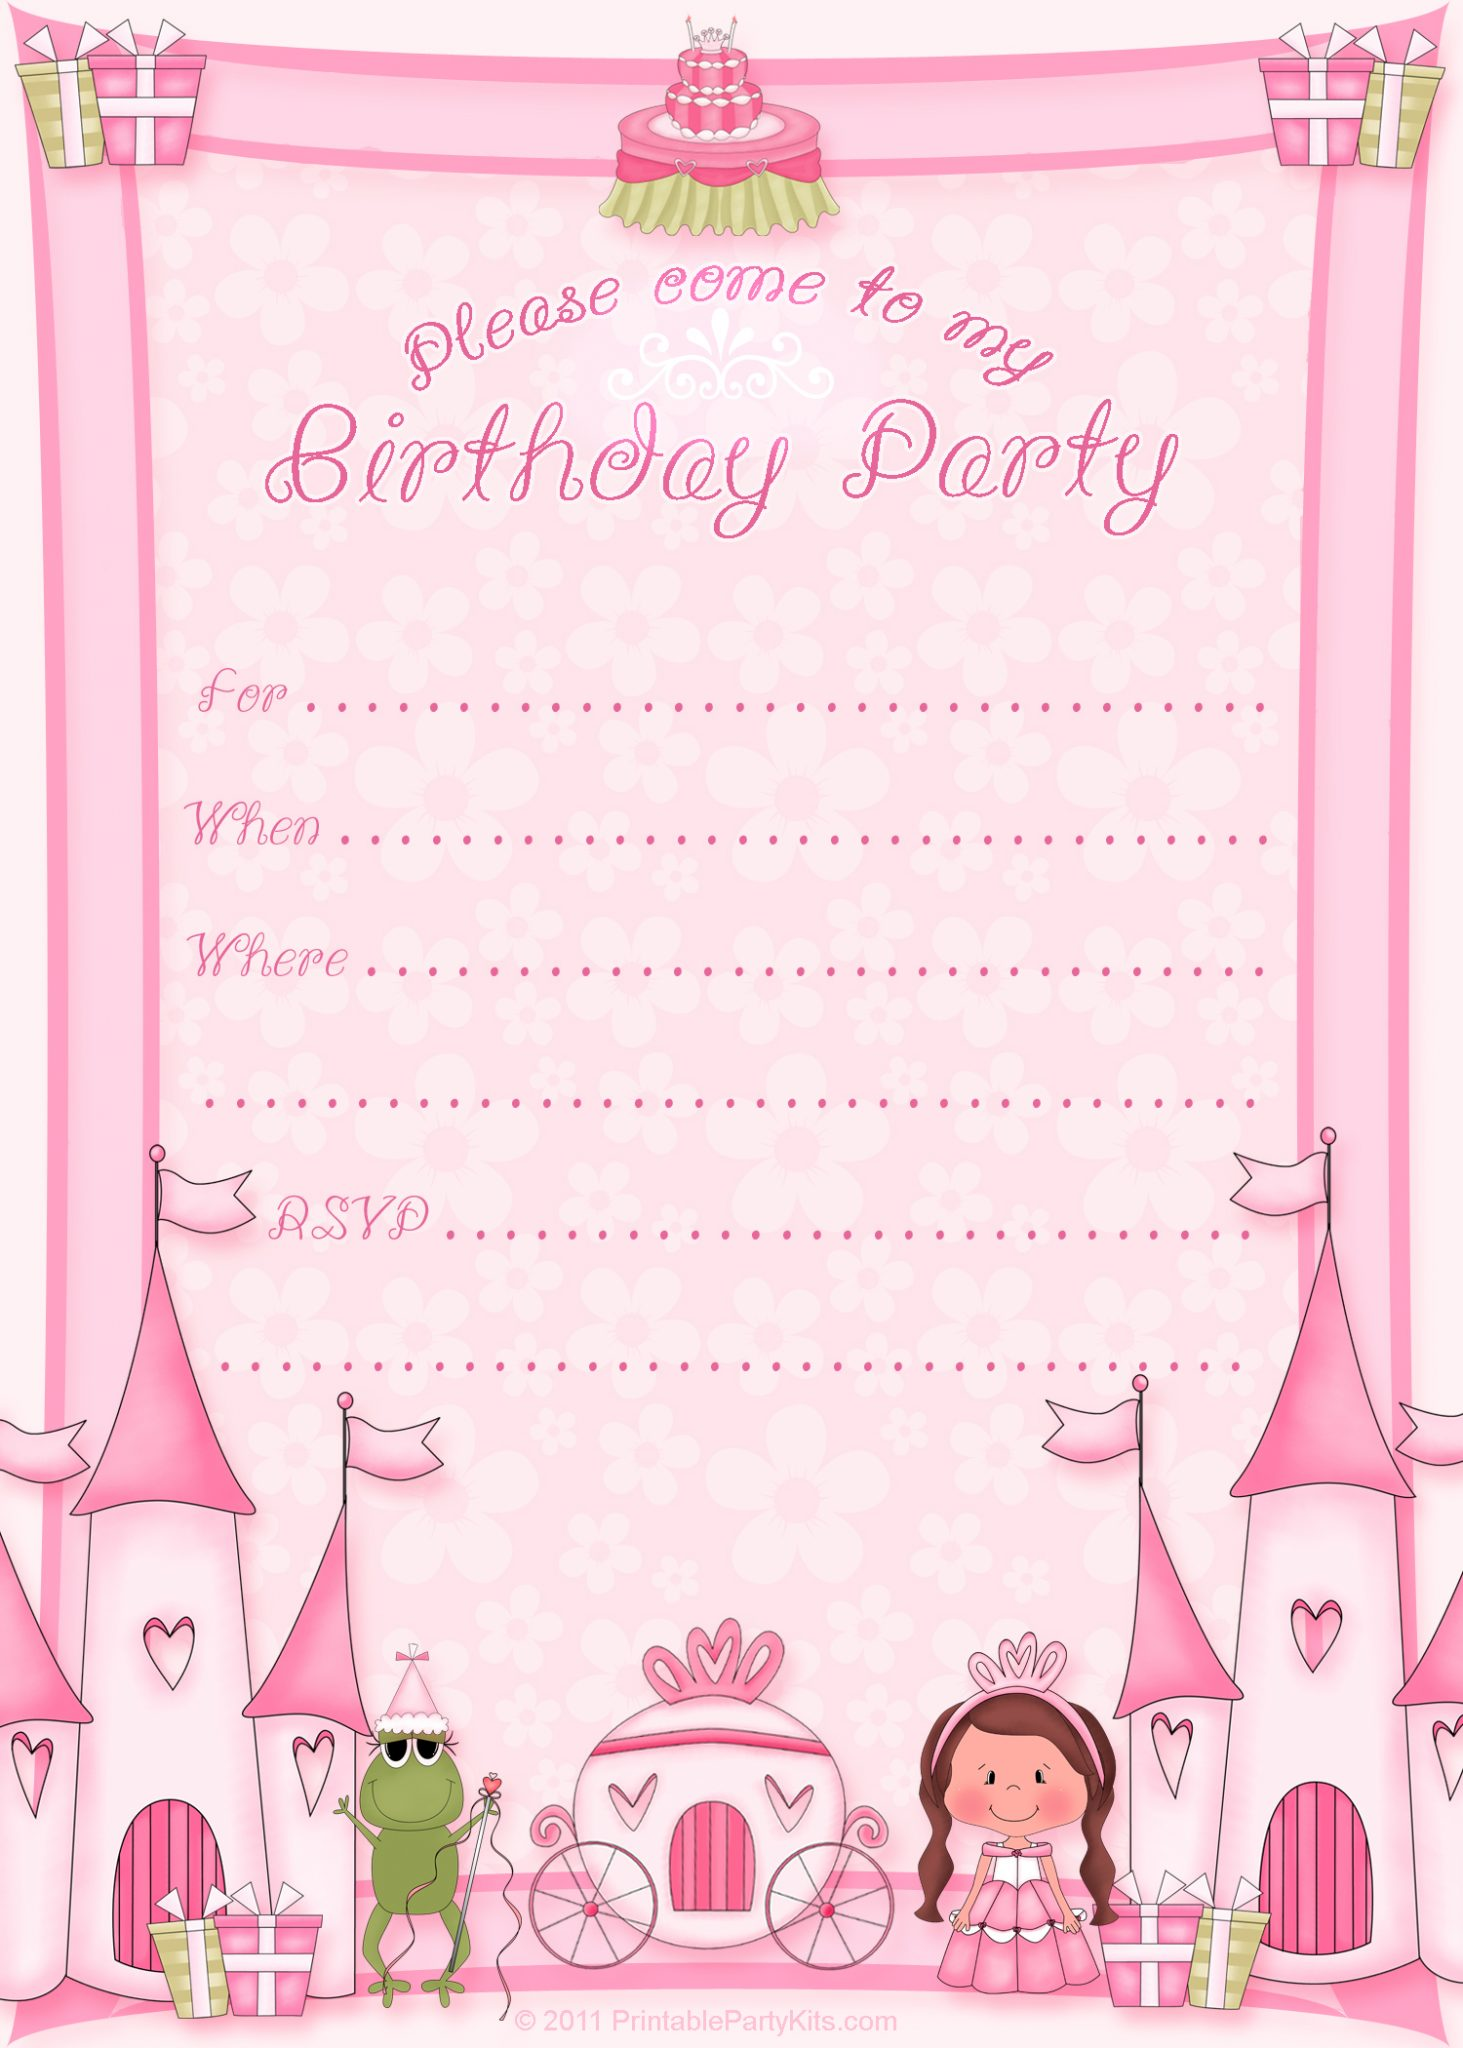 50 Free Birthday Invitation Templates You Will Love These – Party Invite Template